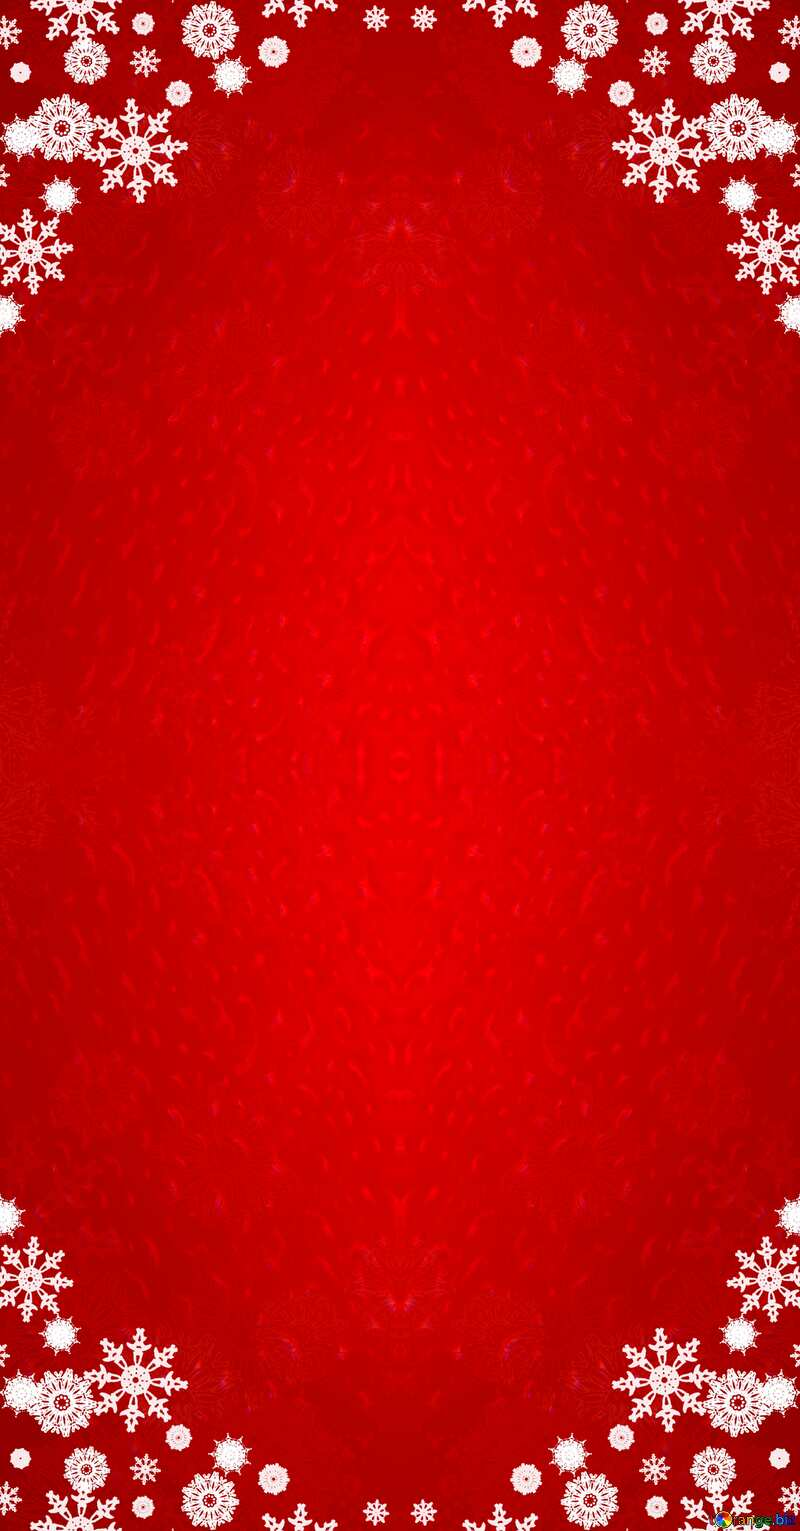 Red Christmas frame background     №40659